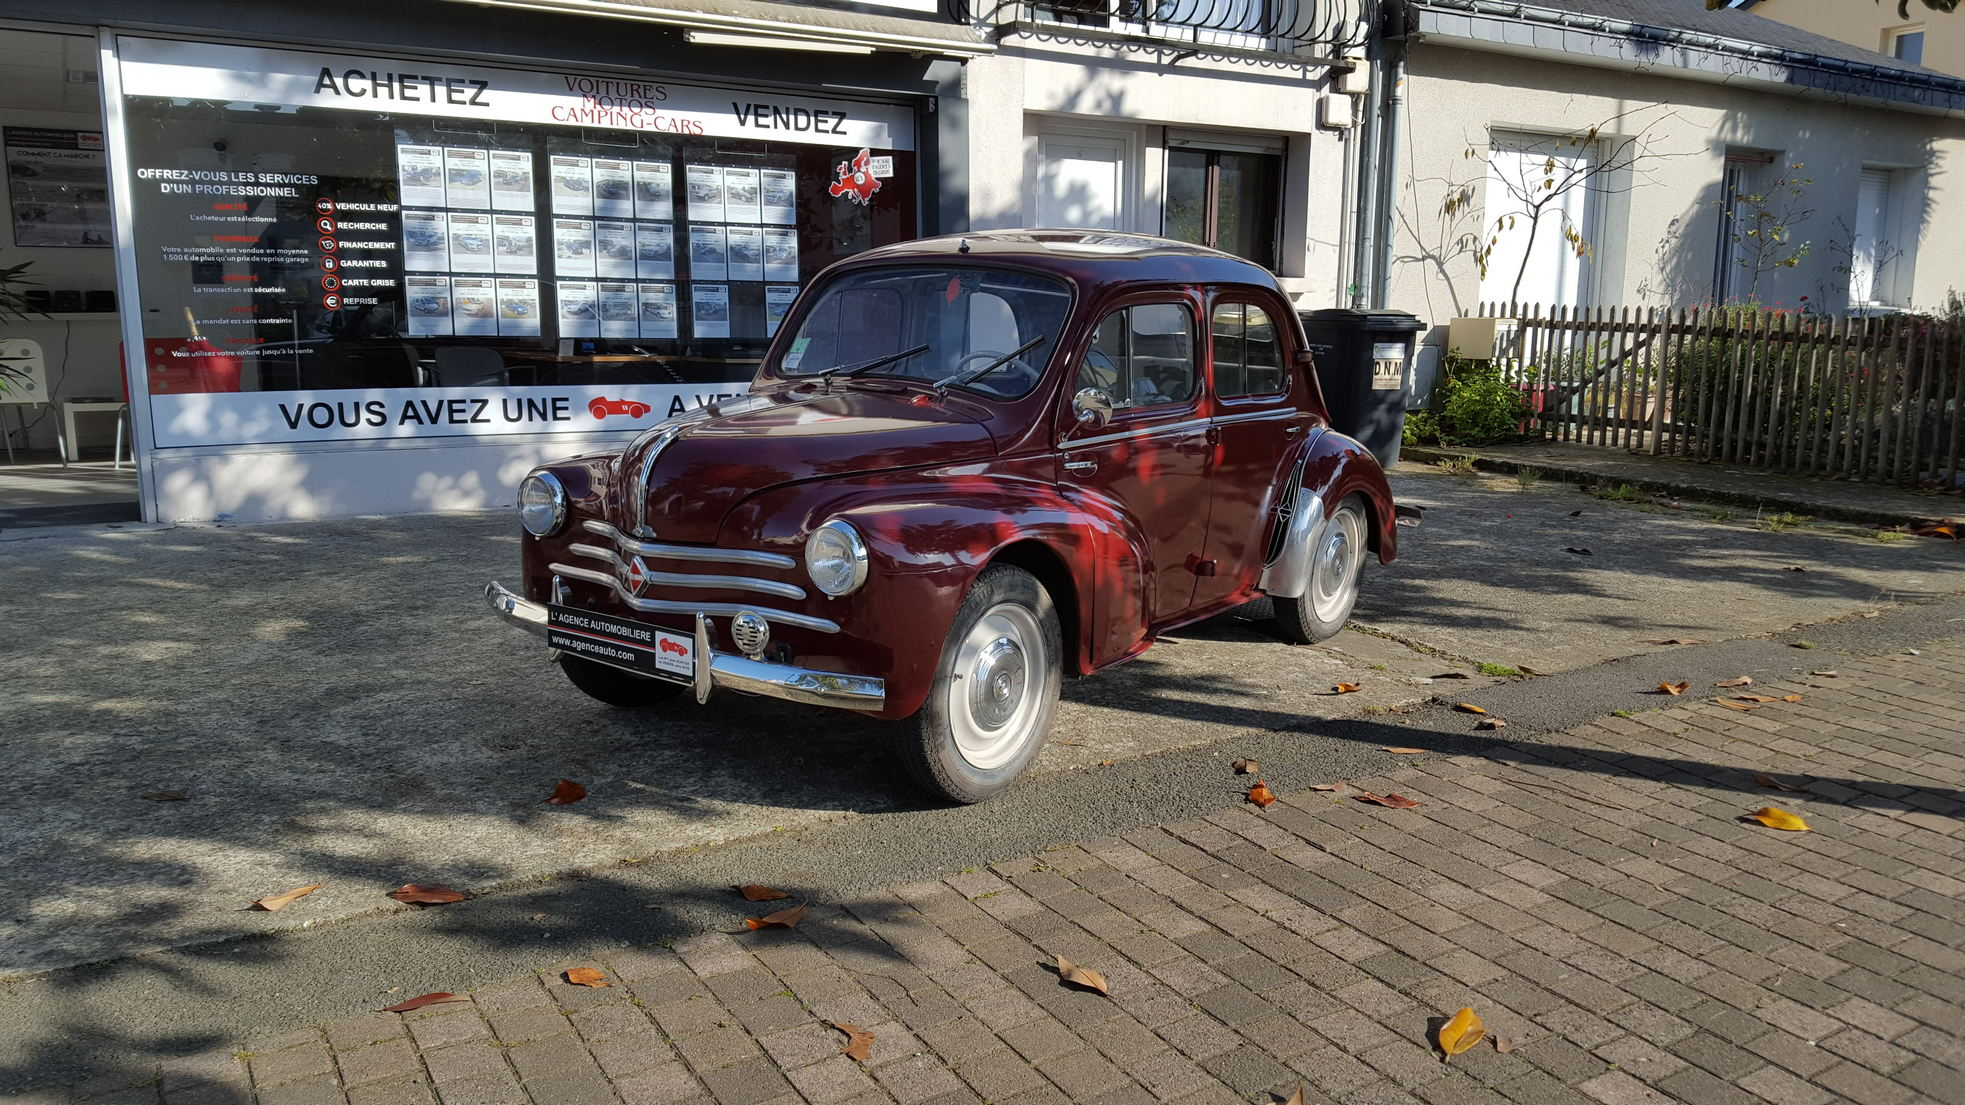 renault 4 cv r1062 luxe occasion angers pas cher voiture occasion maine et loire 49124 agence. Black Bedroom Furniture Sets. Home Design Ideas